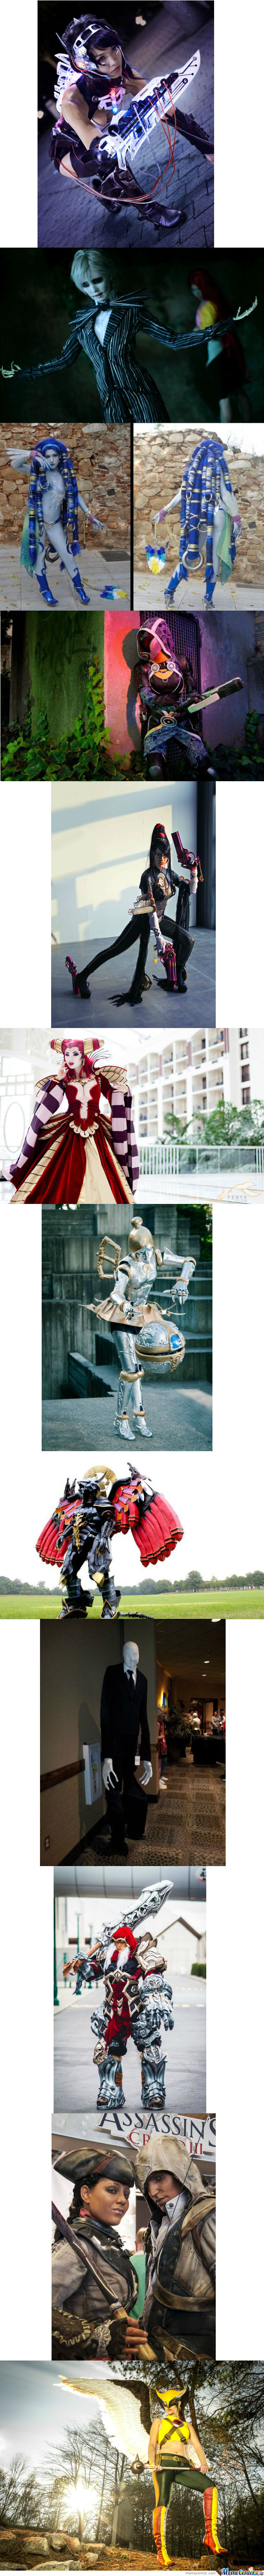 Daily Cosplay Compilation No: 4